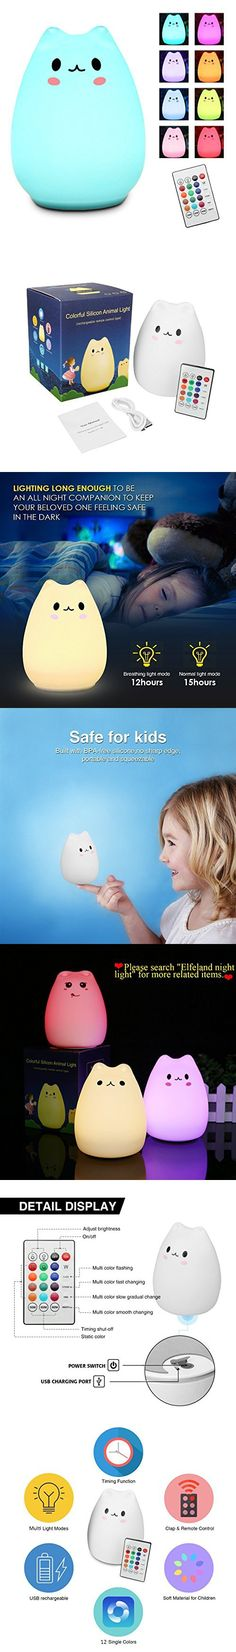 Children Night Light with Remote - Elfeland Cute Kitty LED Portable Silicone Cat Lamp - 12 1 Colors - Adjustable Brightness - Timing off - USB Rechargeable - for Baby Kids Christmas Gift